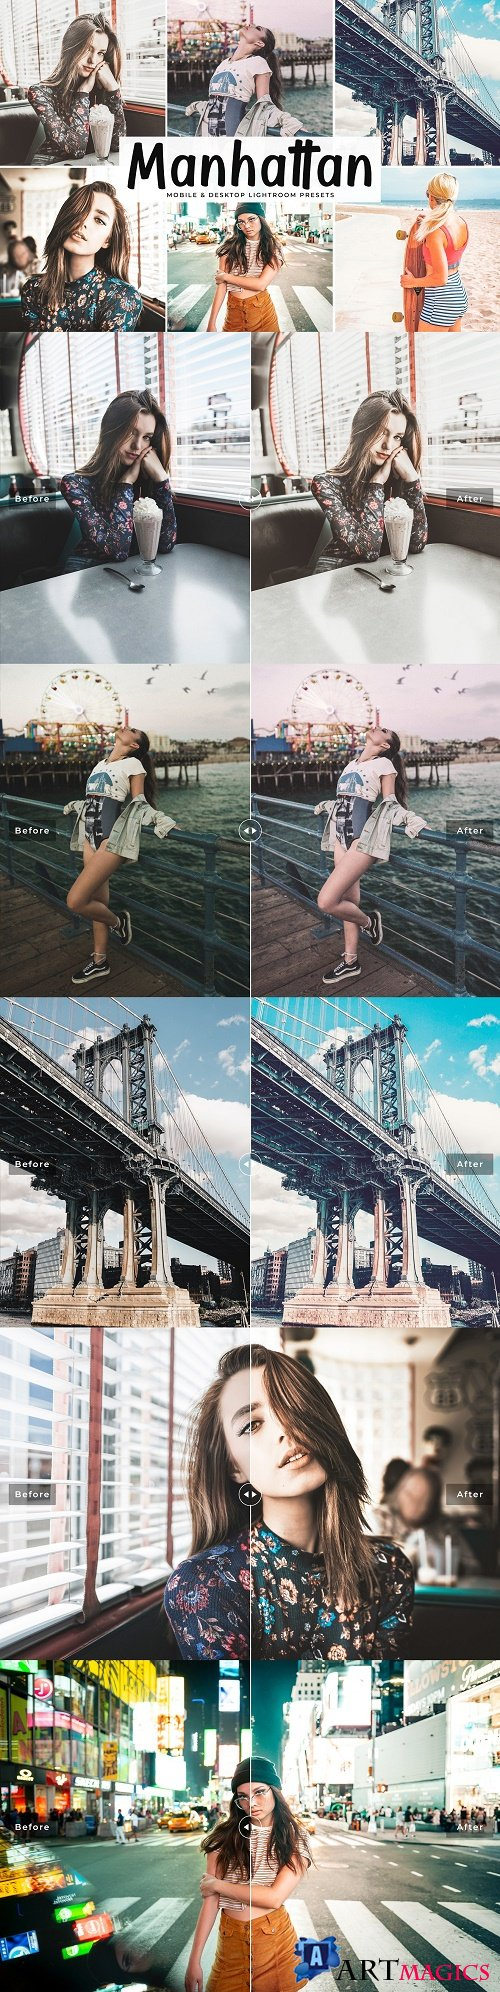 Manhattan Pro Lightroom Presets - 3884860